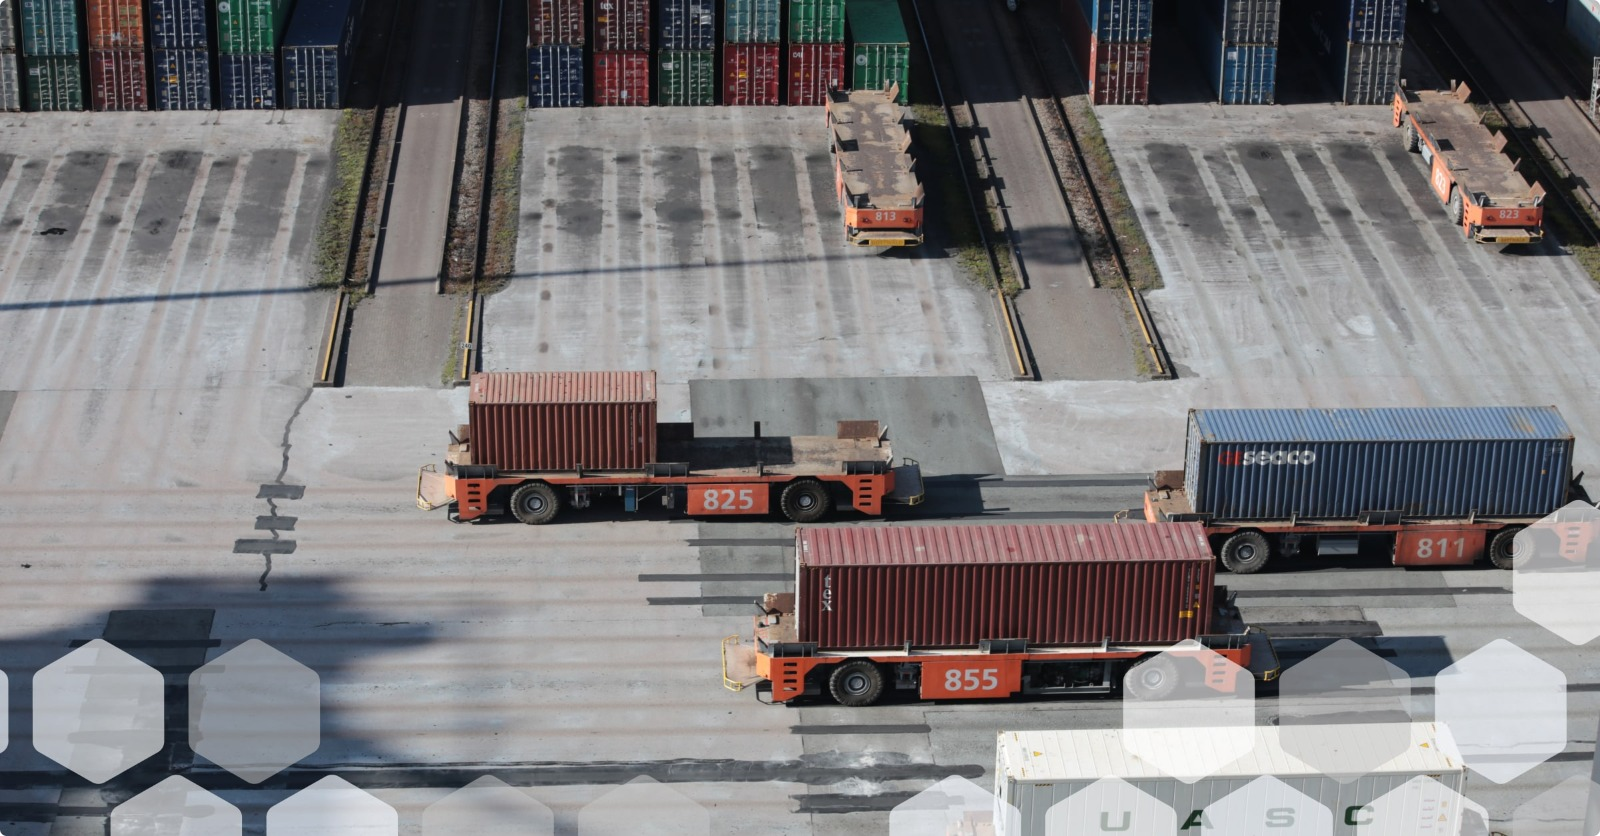 Painful detention and demurrage charges